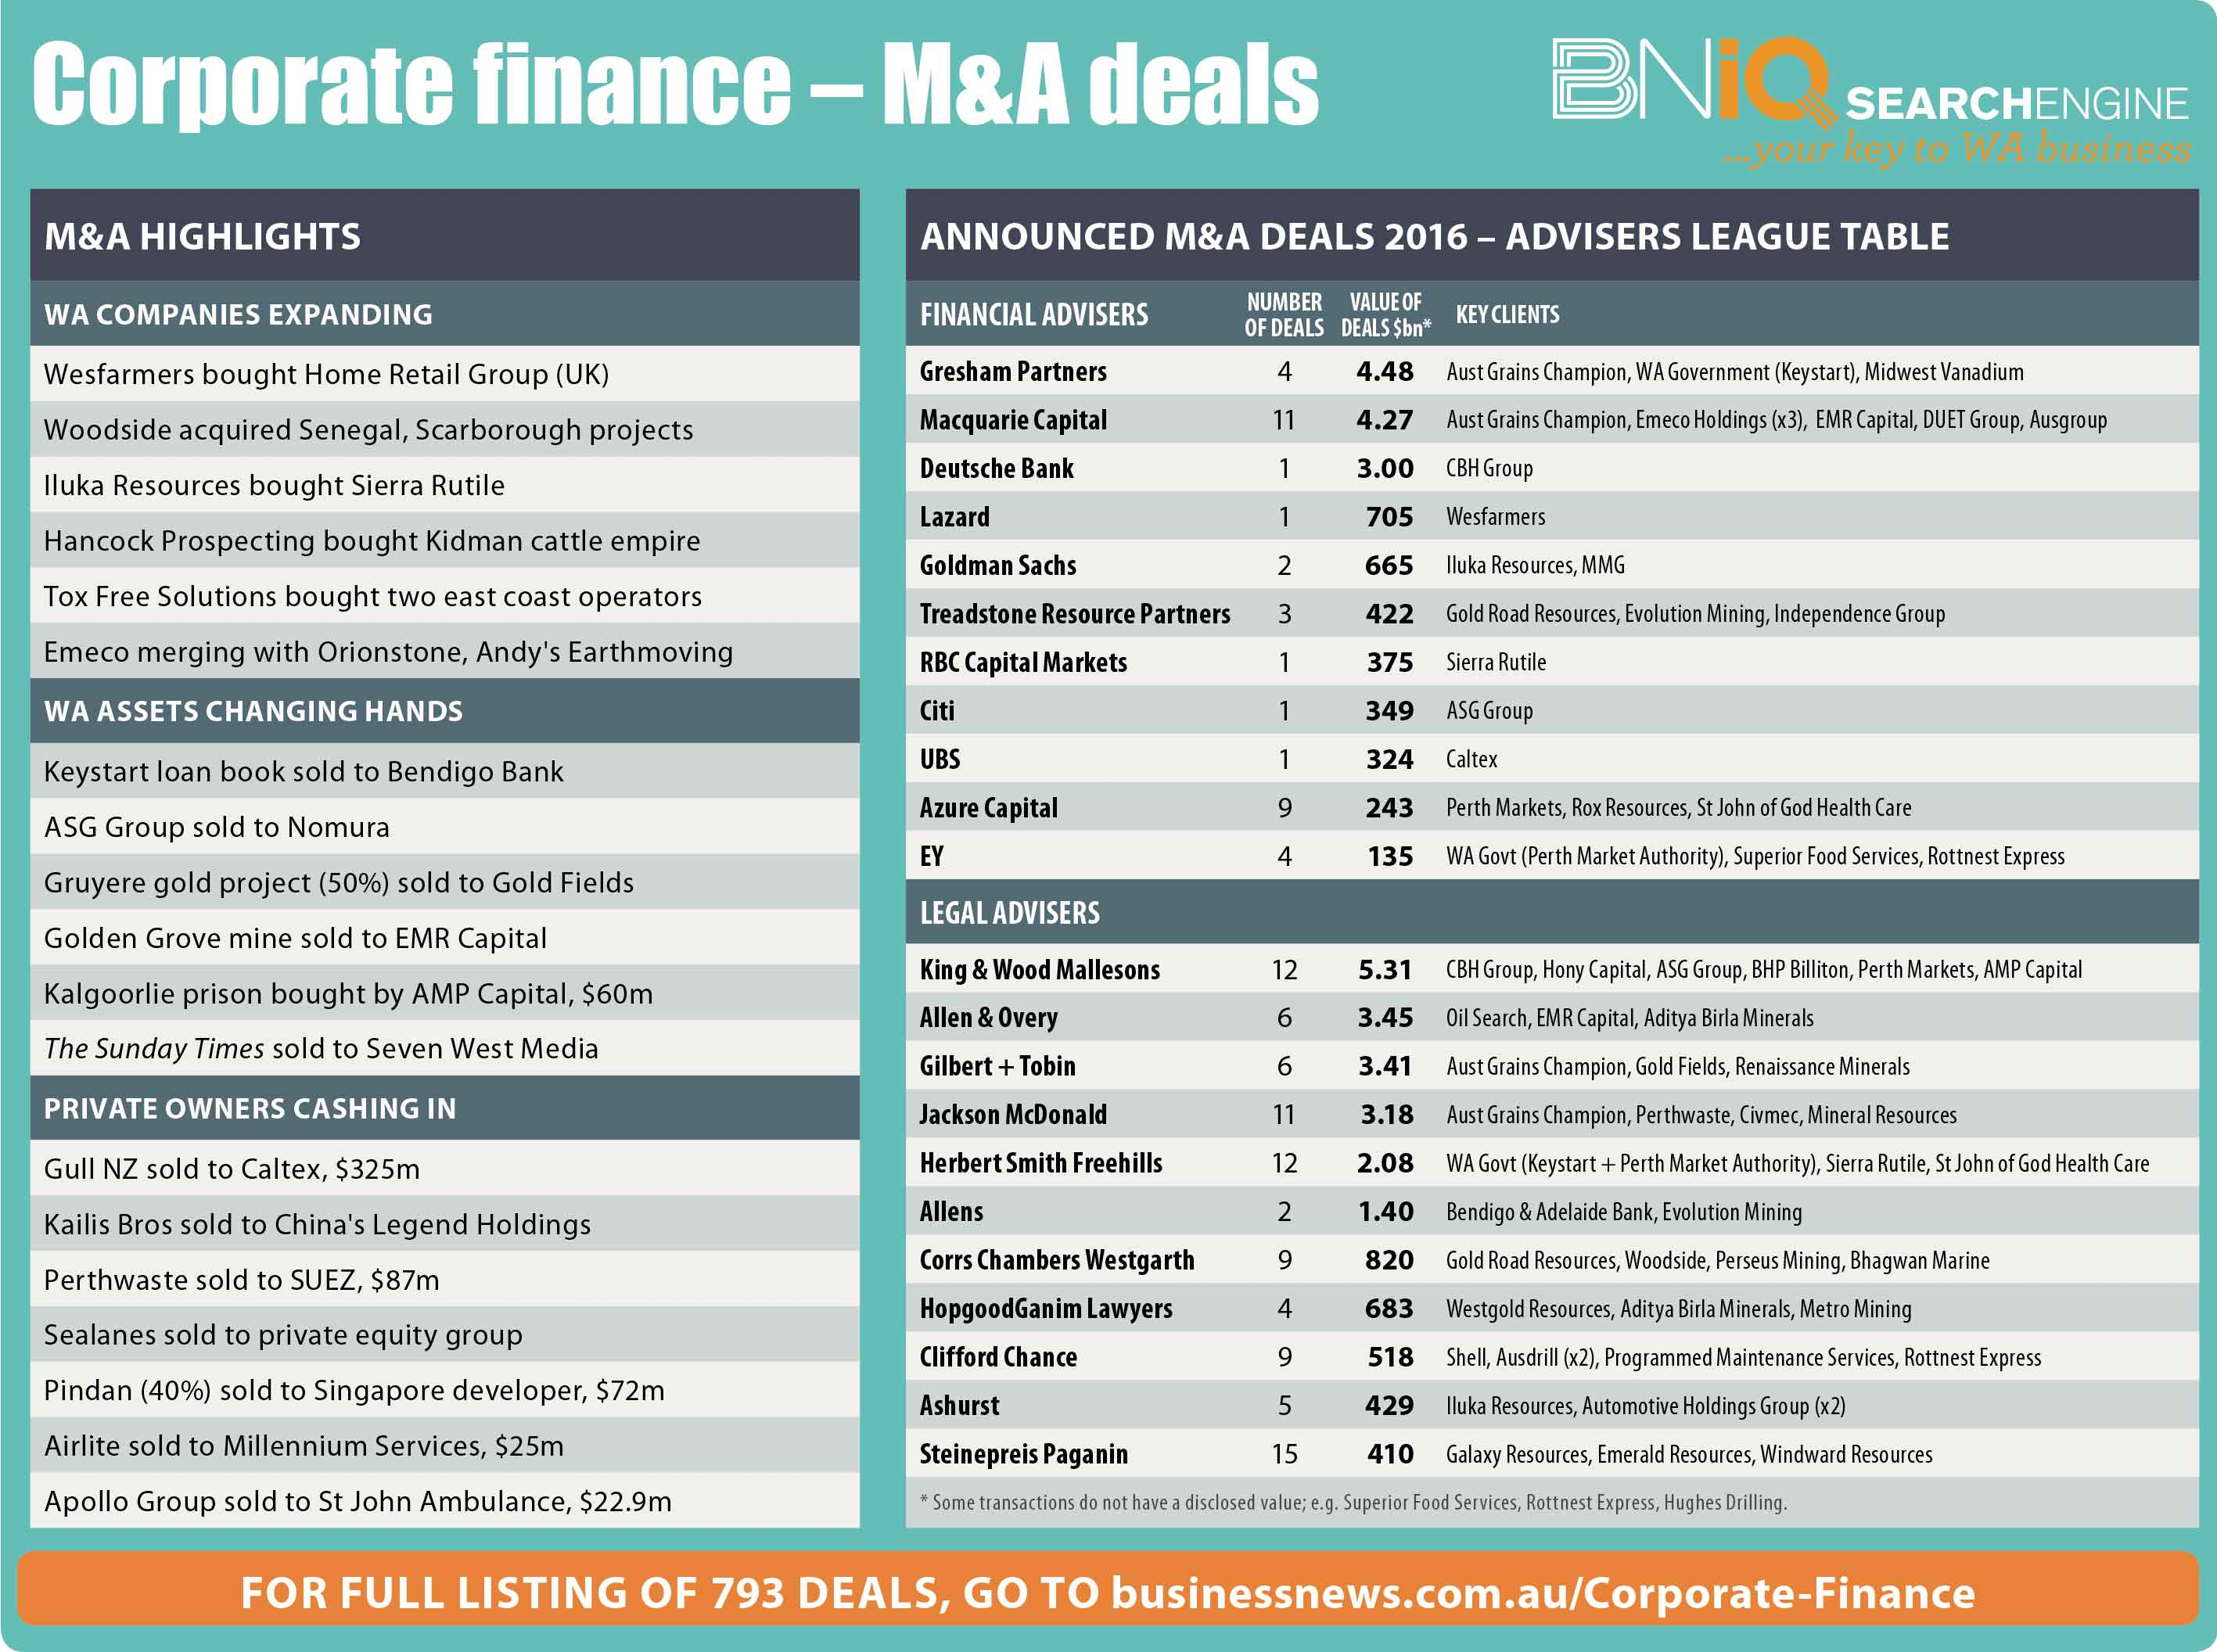 M&A advisers to battle back after soft 2016   Business News